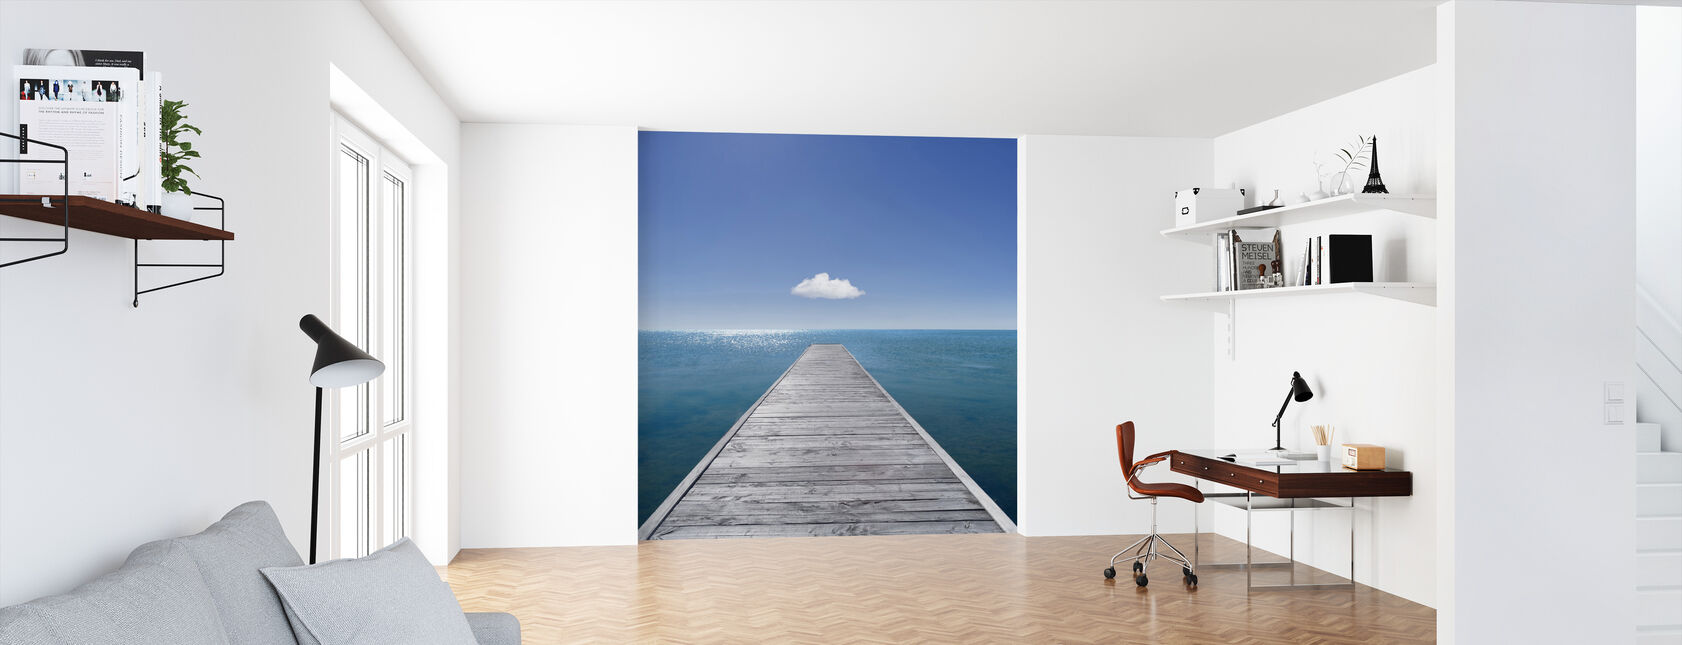 Jetty into the Horizon - Wallpaper - Office